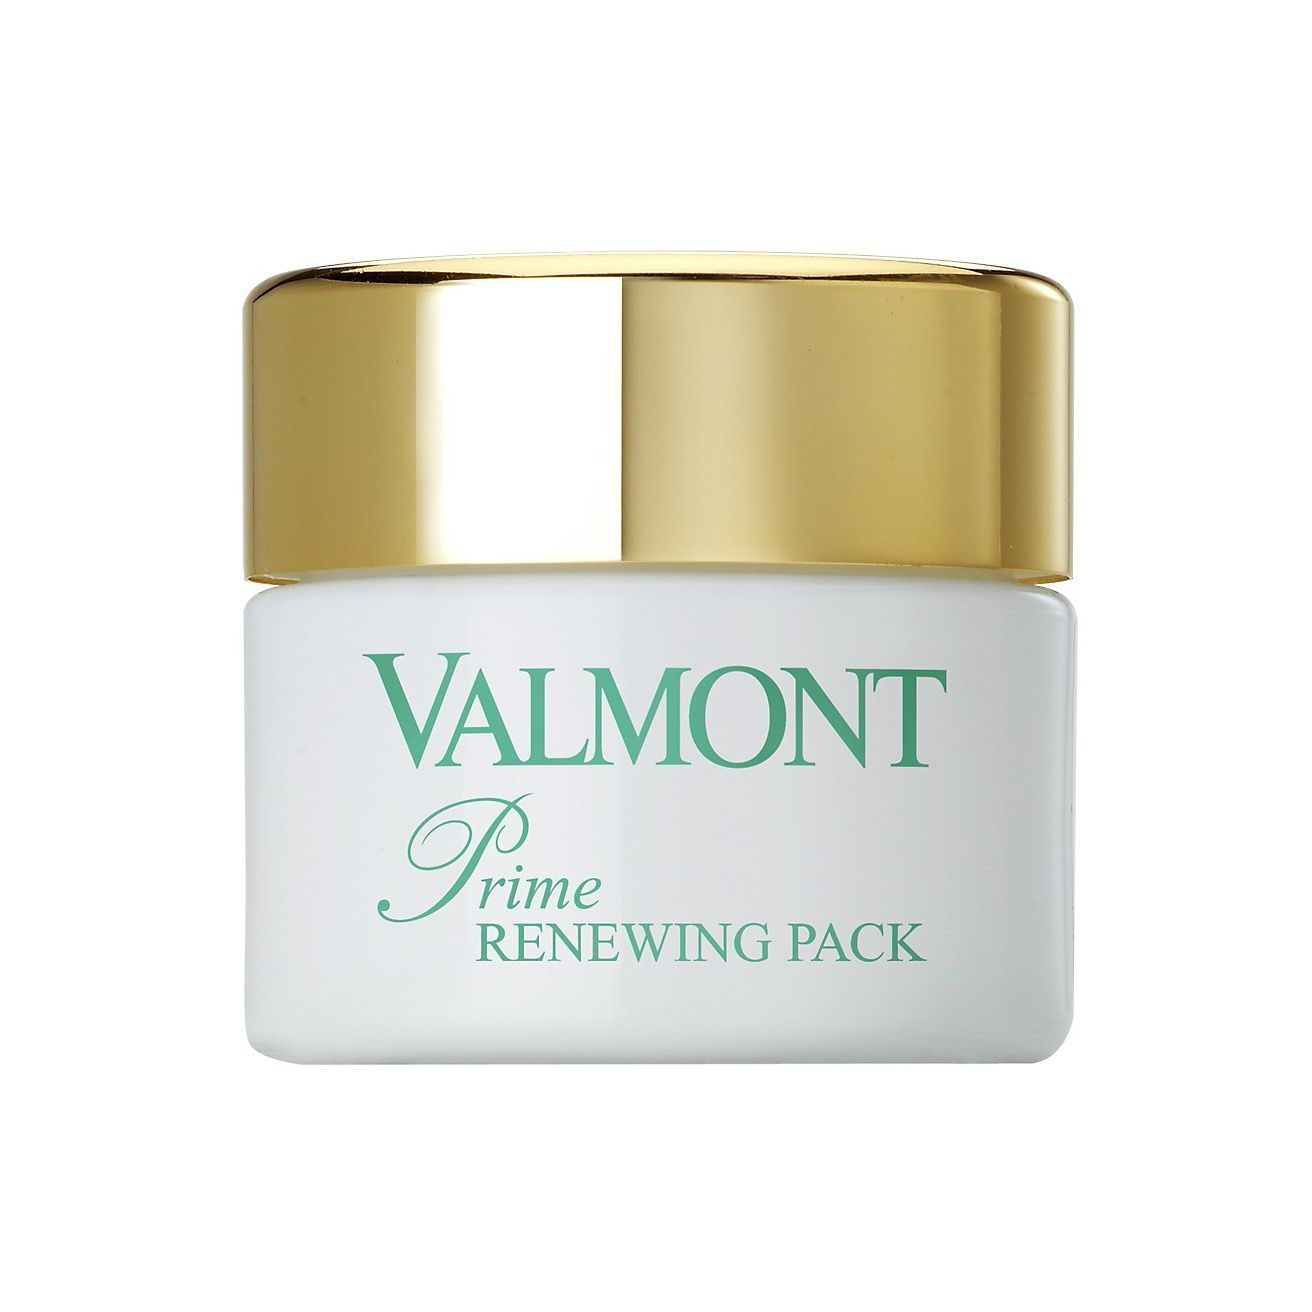 Valmont Prime Renewing Pack reviews, photos, ingredients - MakeupAlley